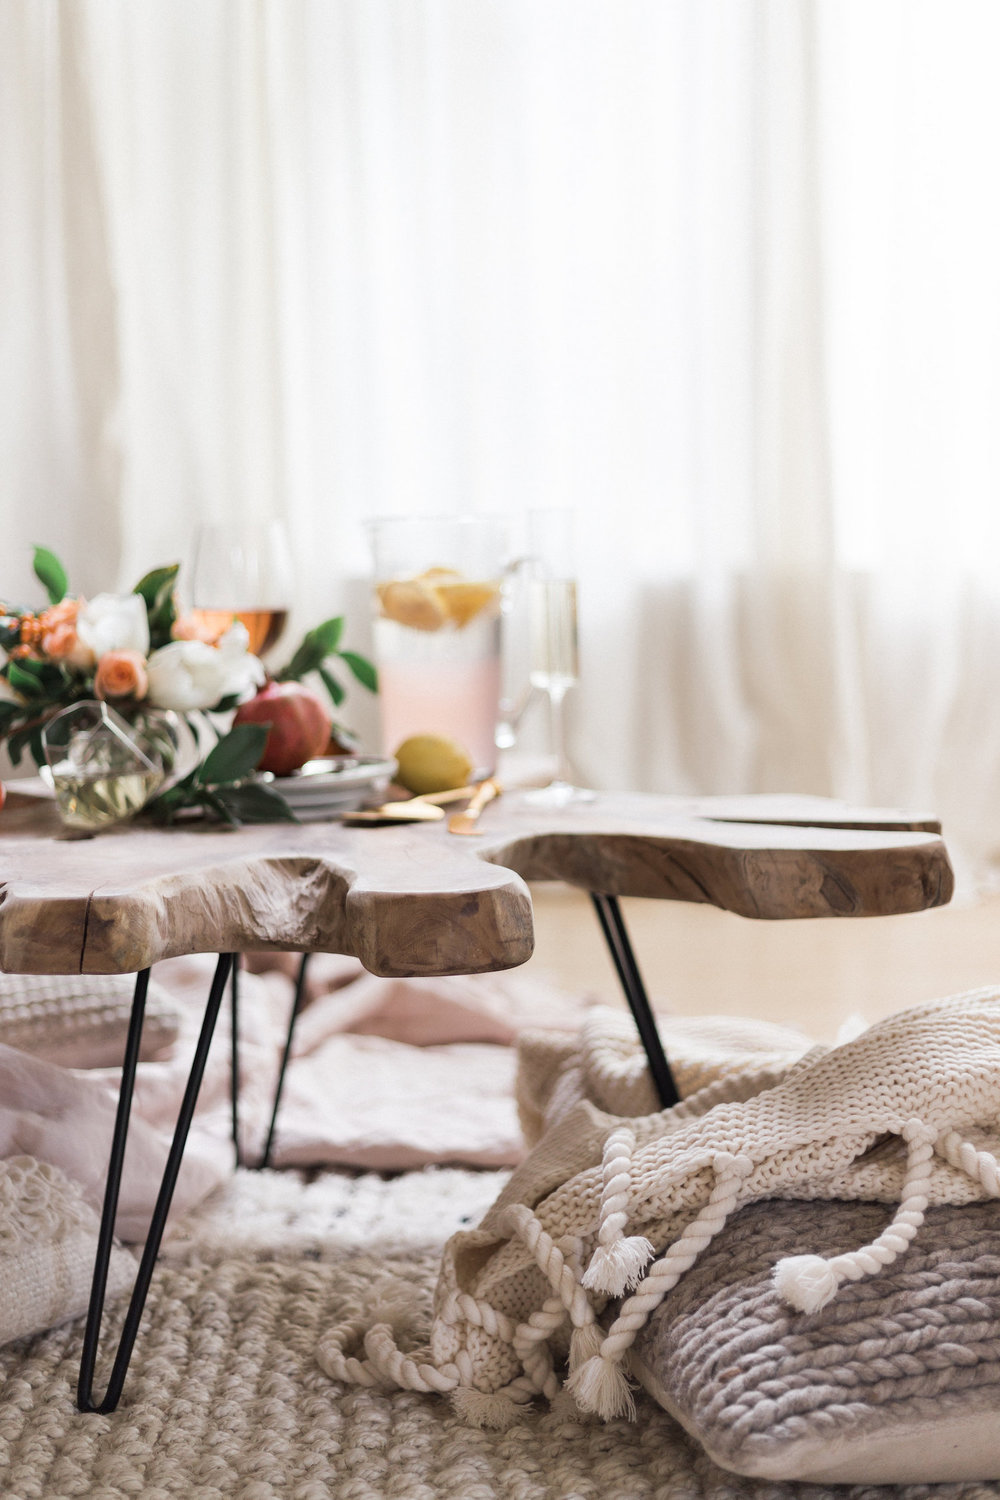 Wood table with cozy blankets for winter get togethers | A Fabulous Fete